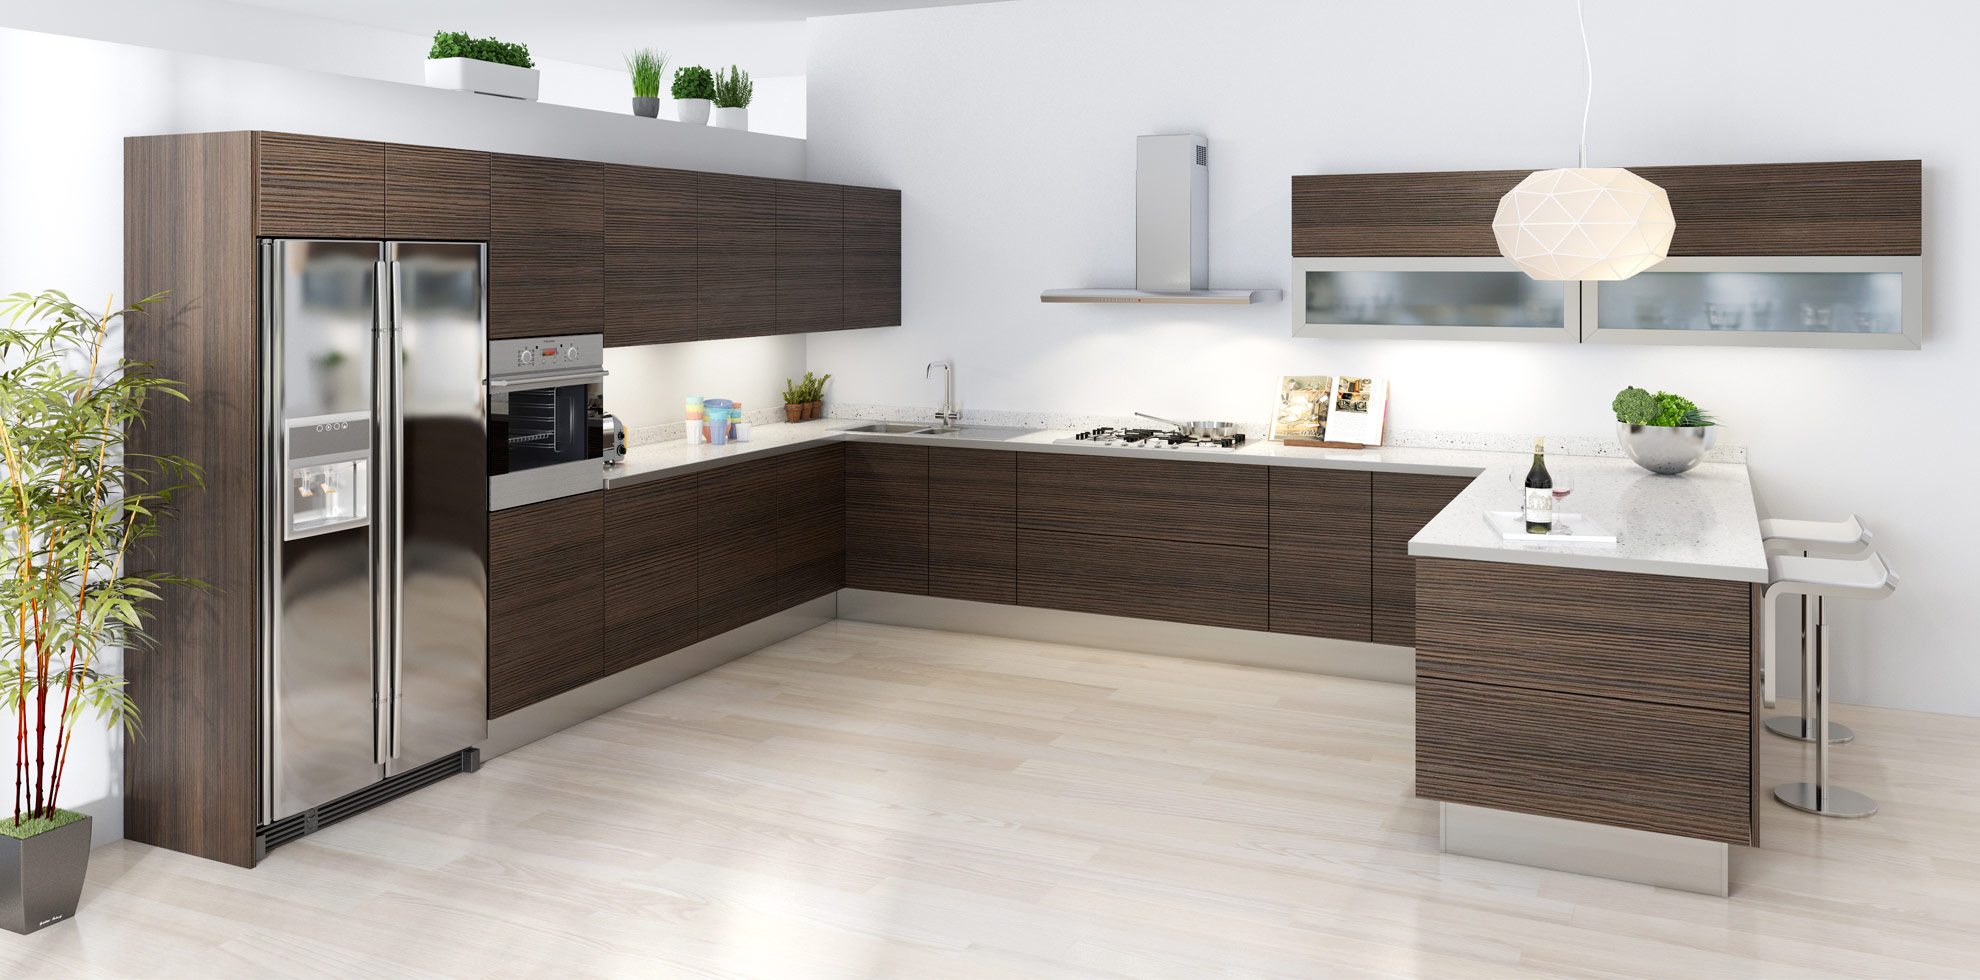 Modern Kitchen Designs Buy Online Product Amacfi Modern Rta Kitchen Cabinets Buy Online